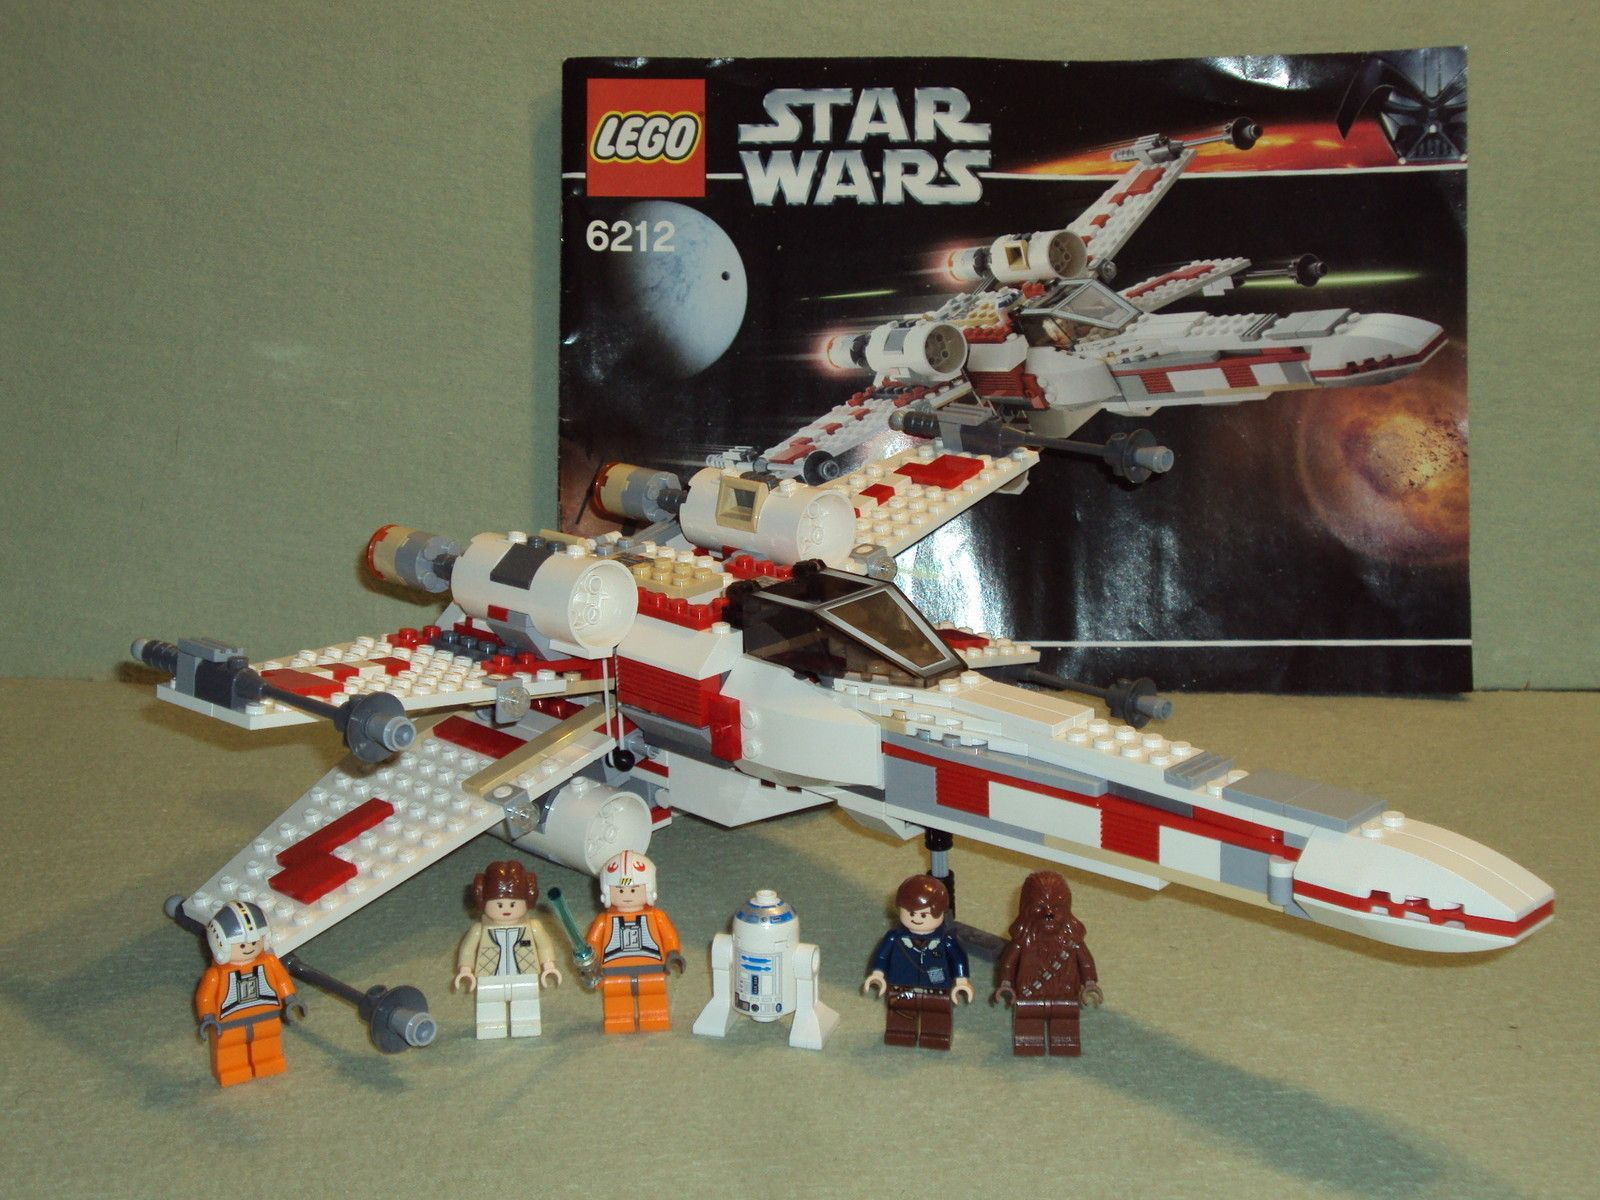 Lego star wars set 6212 x wing fighter from 2006 rare 100 complete lego star wars set 6212 x wing fighter from 2006 rare 100 complete starwars fandeluxe Gallery